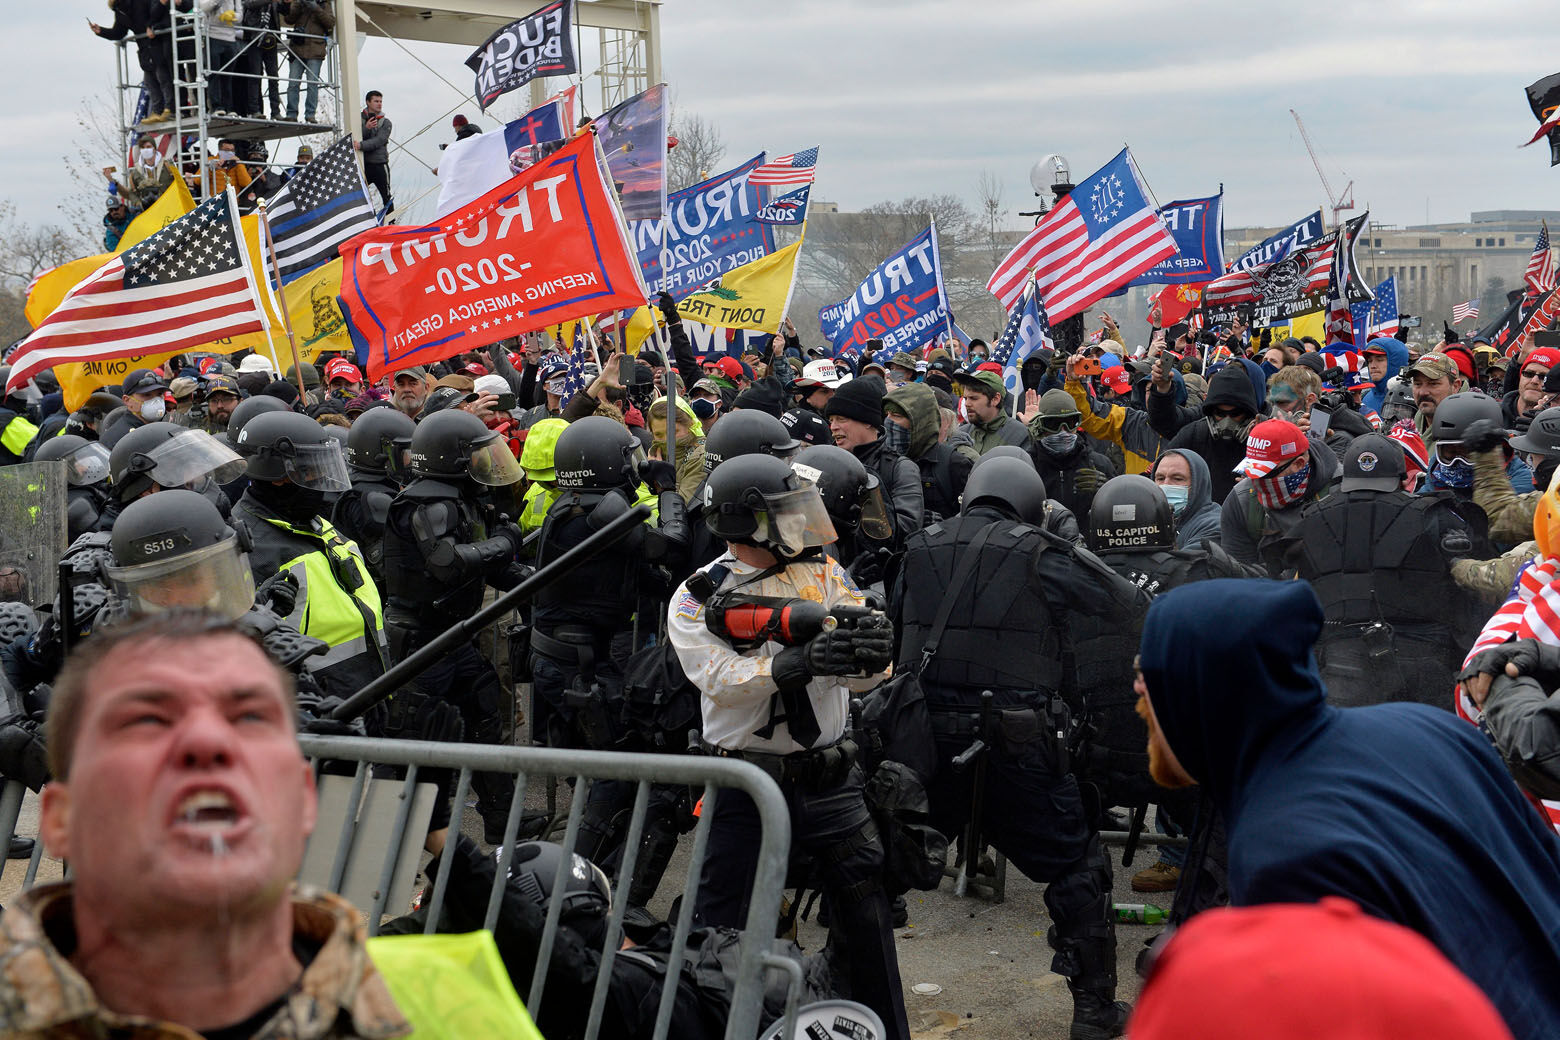 Trump supporters clash with police and security forces as people try to storm the US Capitol Building in Washington, DC, on January 6, 2021. - Demonstrators breeched security and entered the Capitol as Congress debated the a 2020 presidential election Electoral Vote Certification. (Photo by Joseph Prezioso / AFP) (Photo by JOSEPH PREZIOSO/AFP via Getty Images)